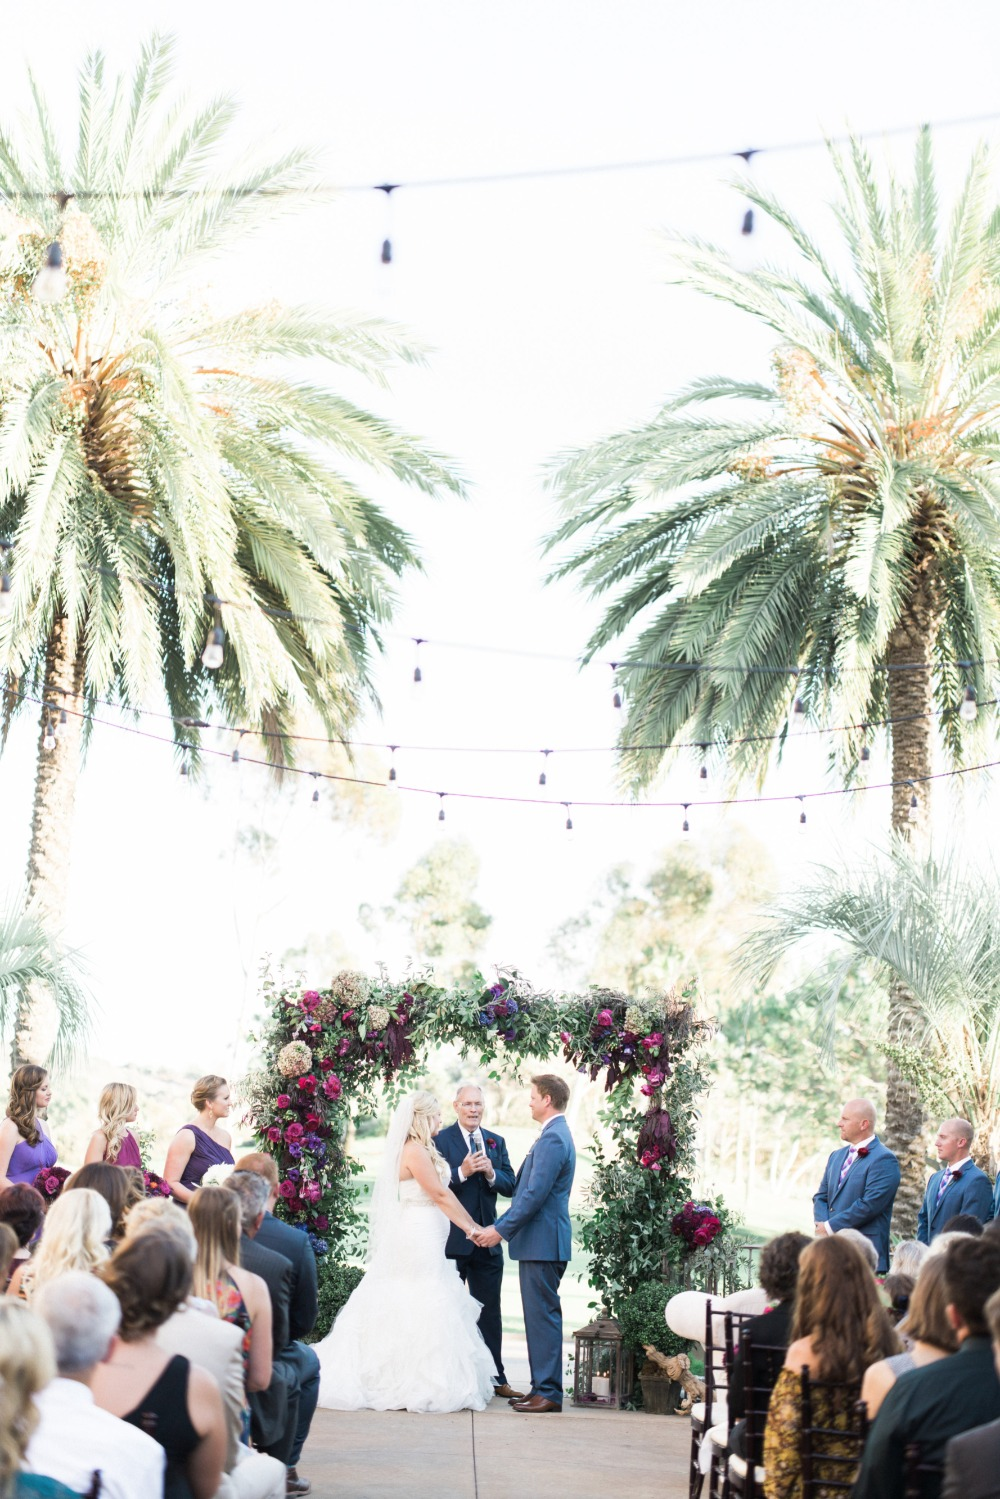 Beautiful outdoor ceremony in California